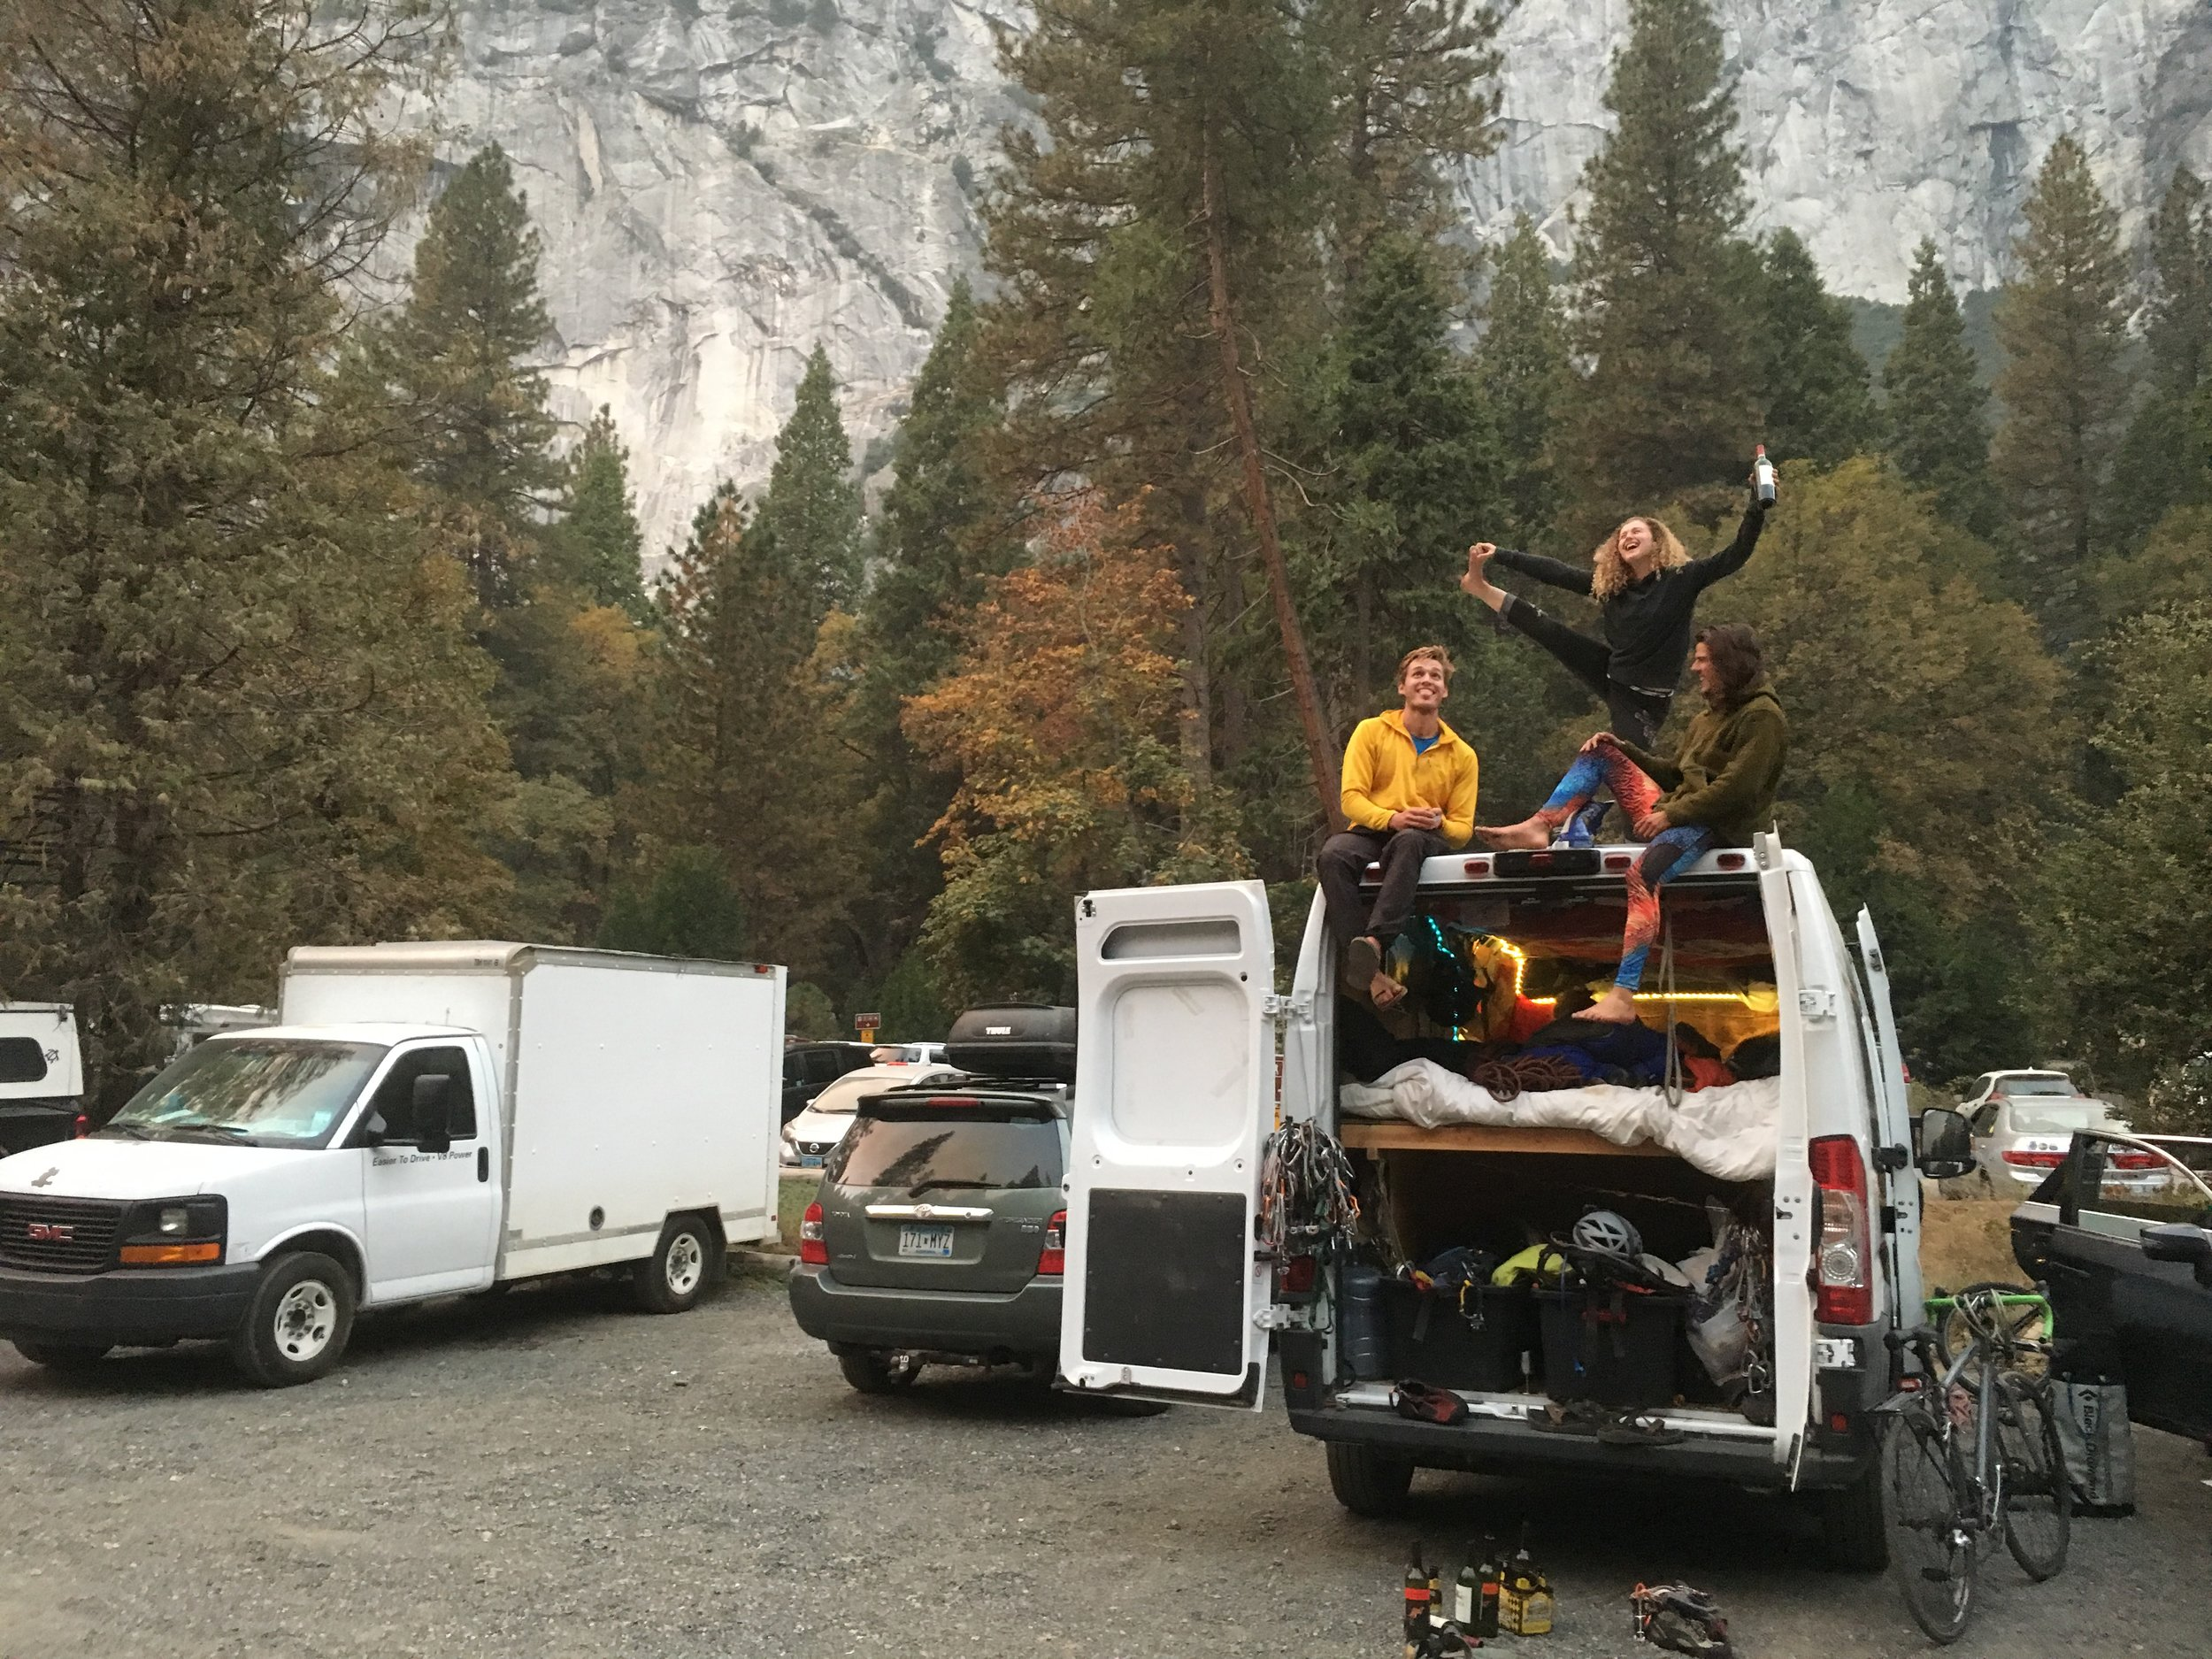 Welcome to Yosemite National Parking lot